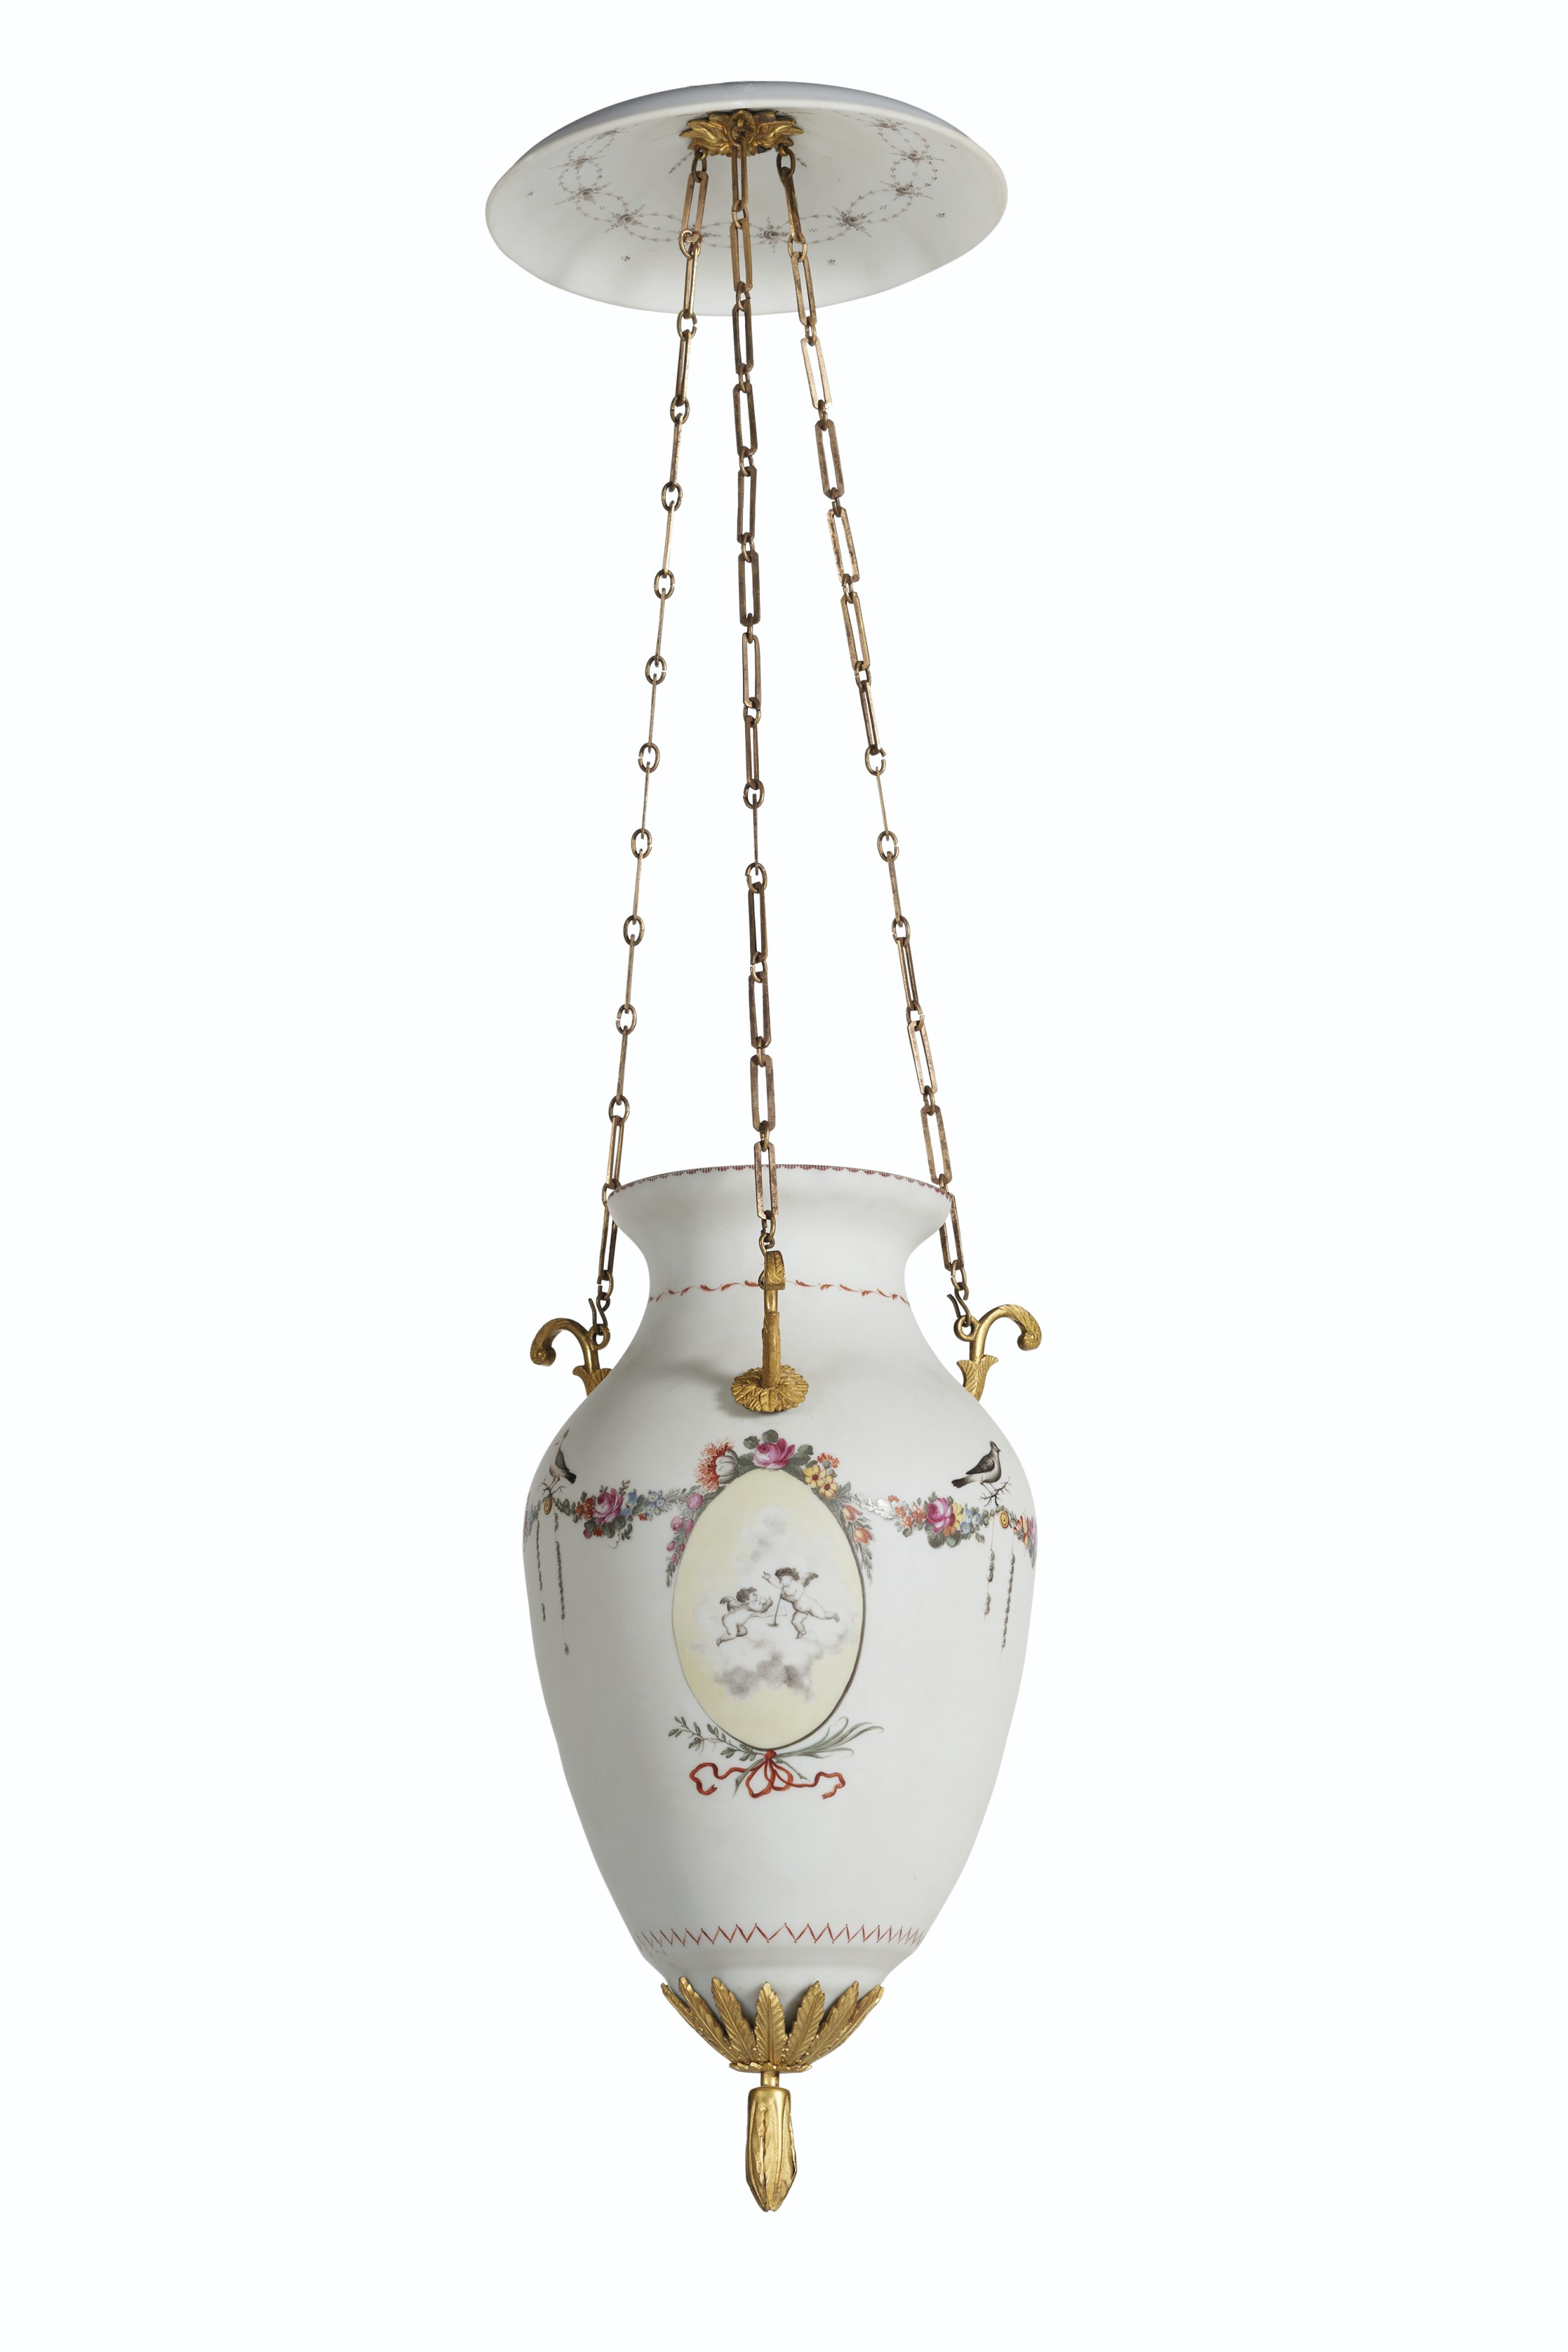 A FRENCH ORMOLU-MOUNTED OPALINE GLASS CHANDELIER